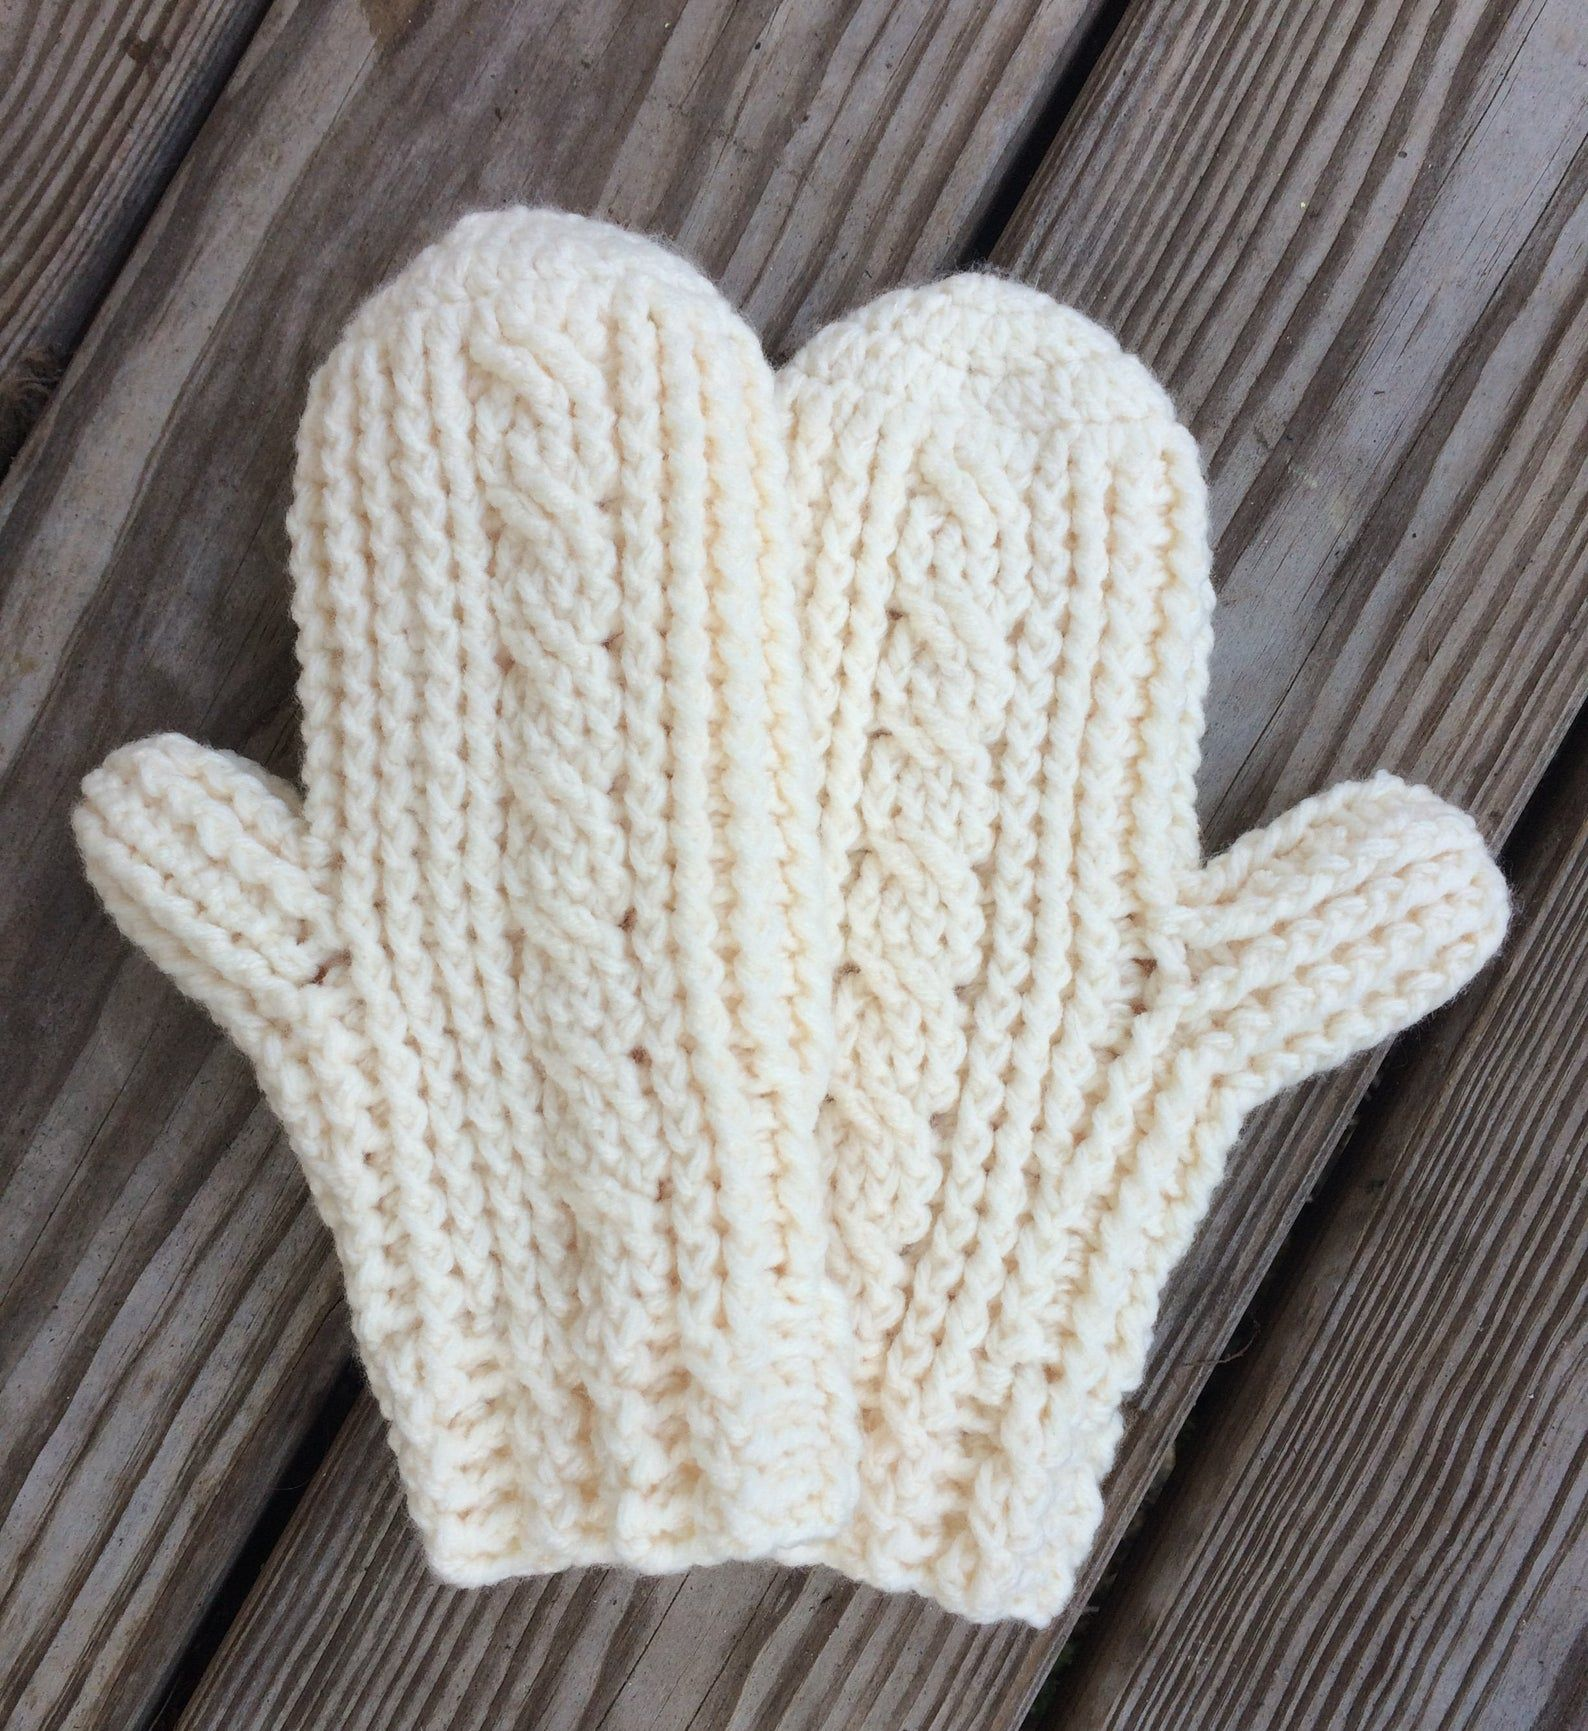 Crochet Pattern Cabled Mitten Pattern Only Cable Winter Mitten Pattern Crochet Mitten Pattern Cabled Mitten Pattern Crochet Pdf Pattern Crochet Mittens Pattern Crochet Baby Mittens Mittens Pattern